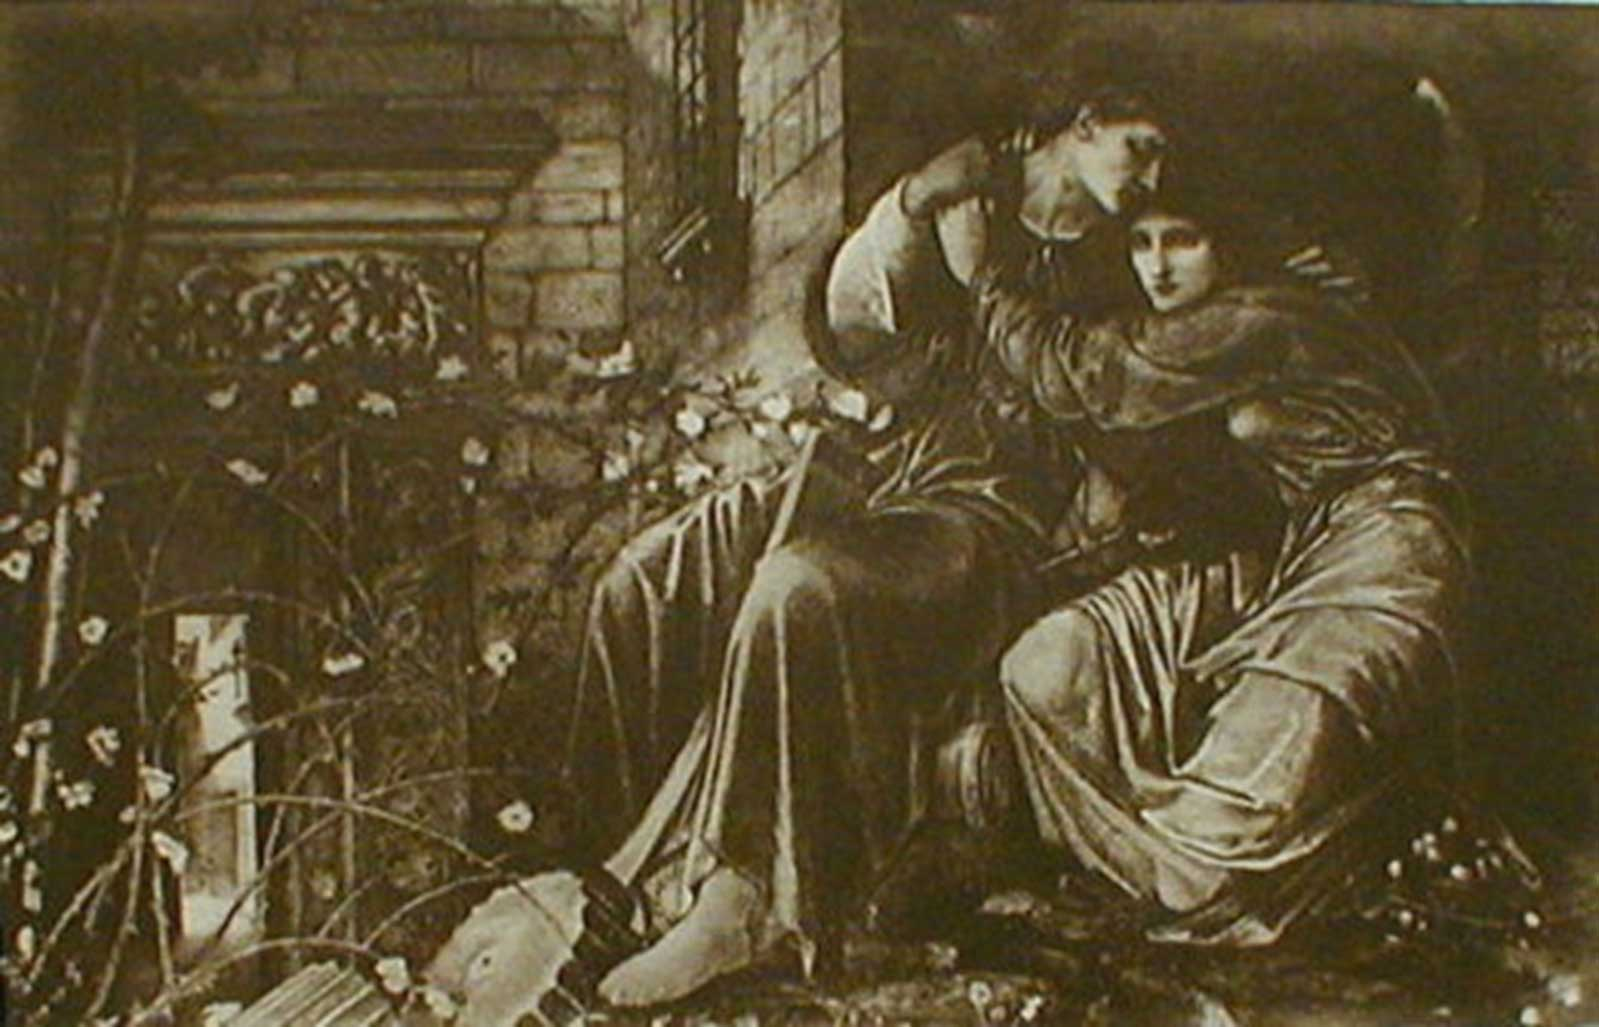 Talusman Fine Art After Sir Edward Coley Burne-Jones - 'Love Among the Ruins' C.1892 Photogravure